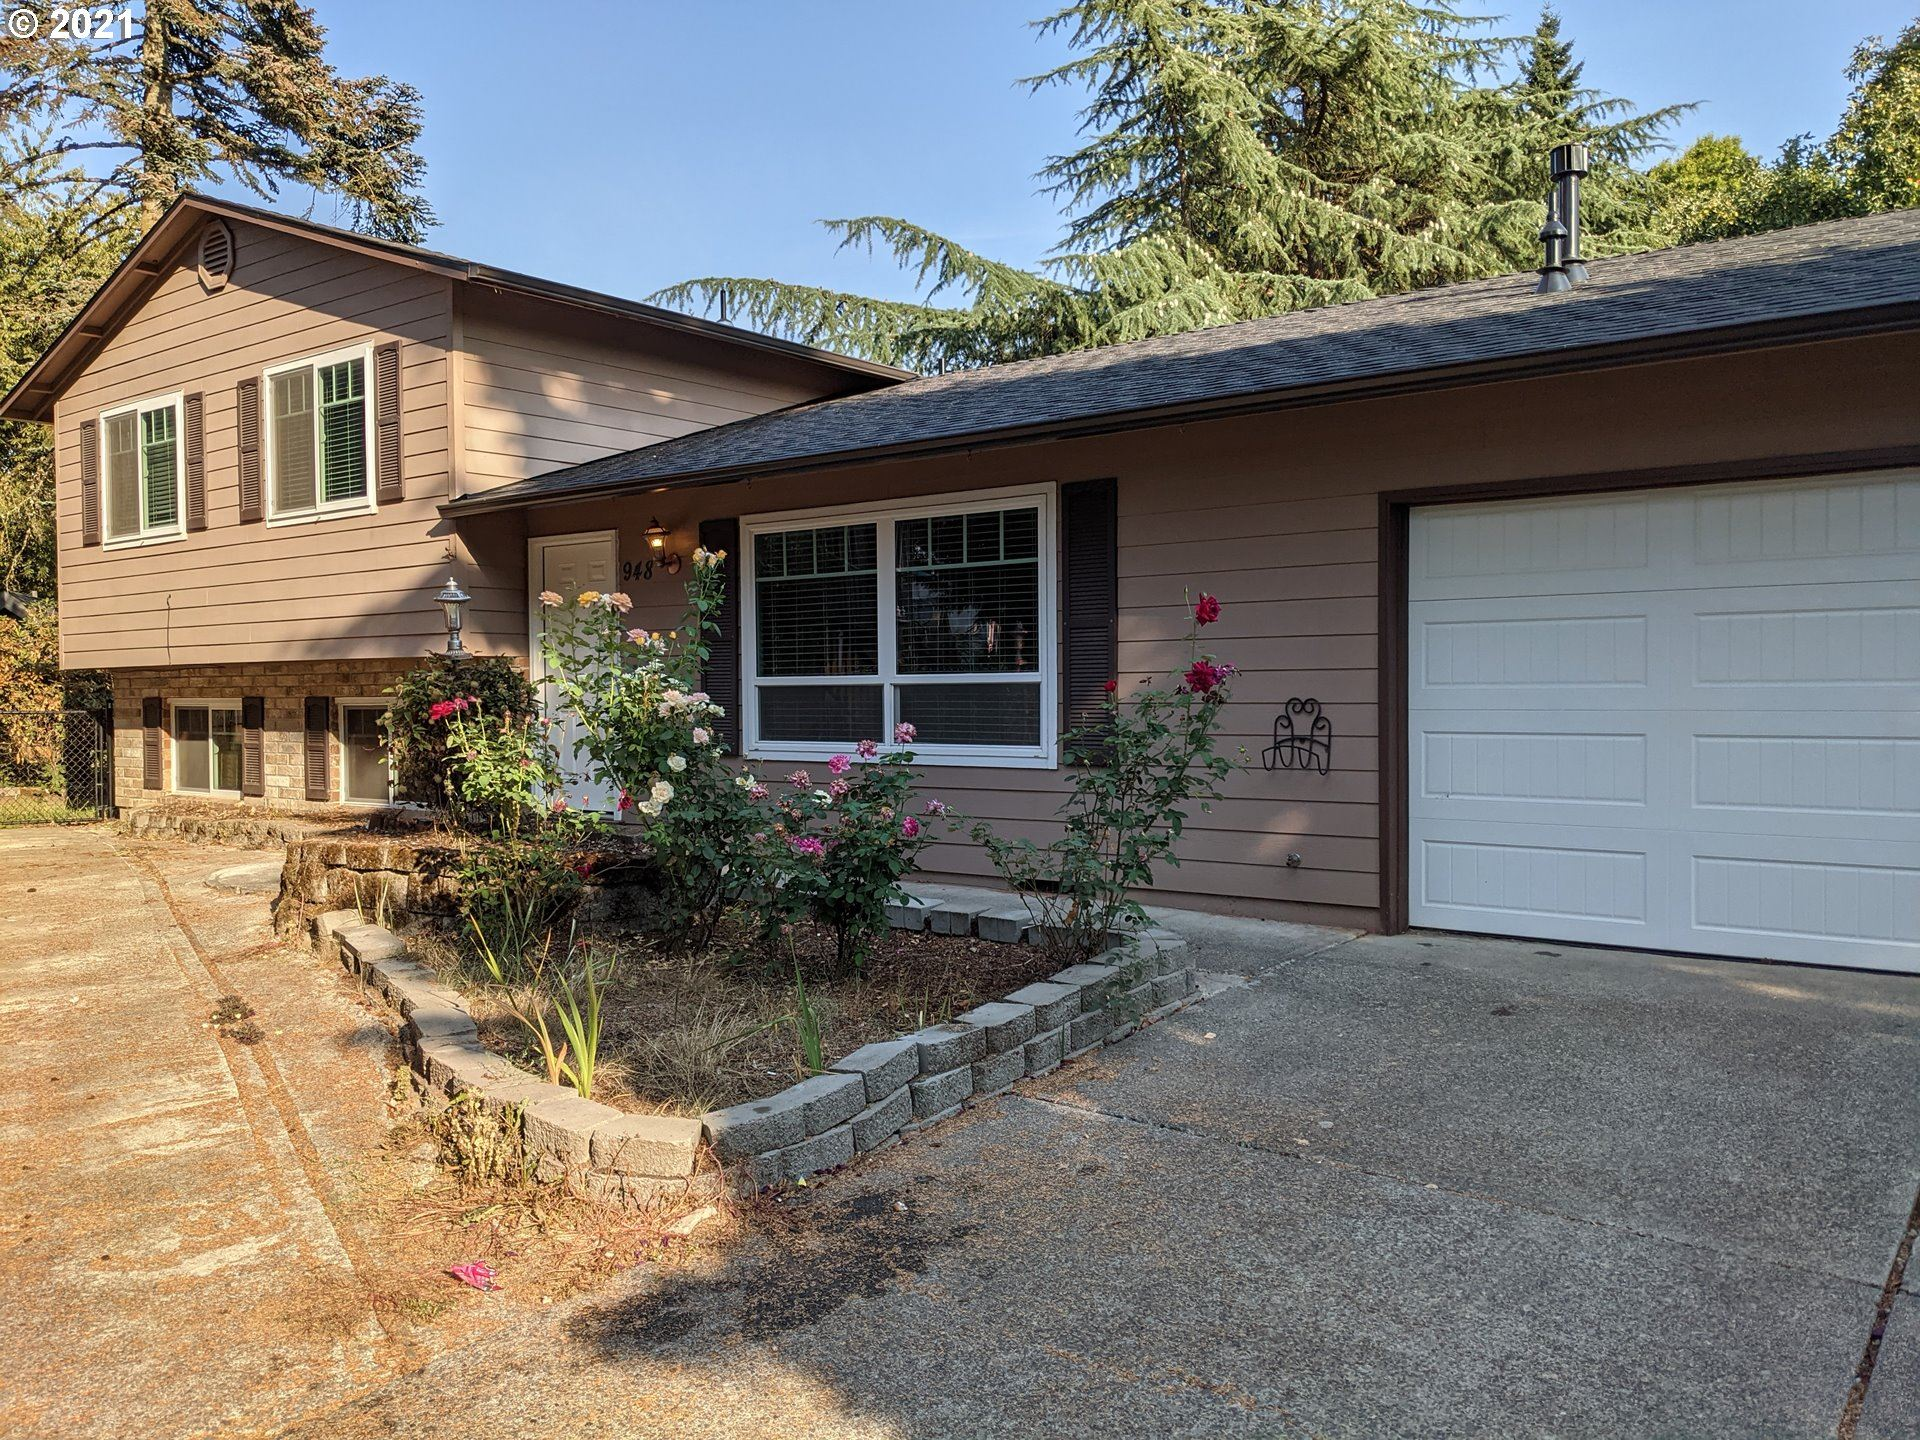 948 SE 174TH AVE, Portland, OR 97233 - MLS#: 21304448